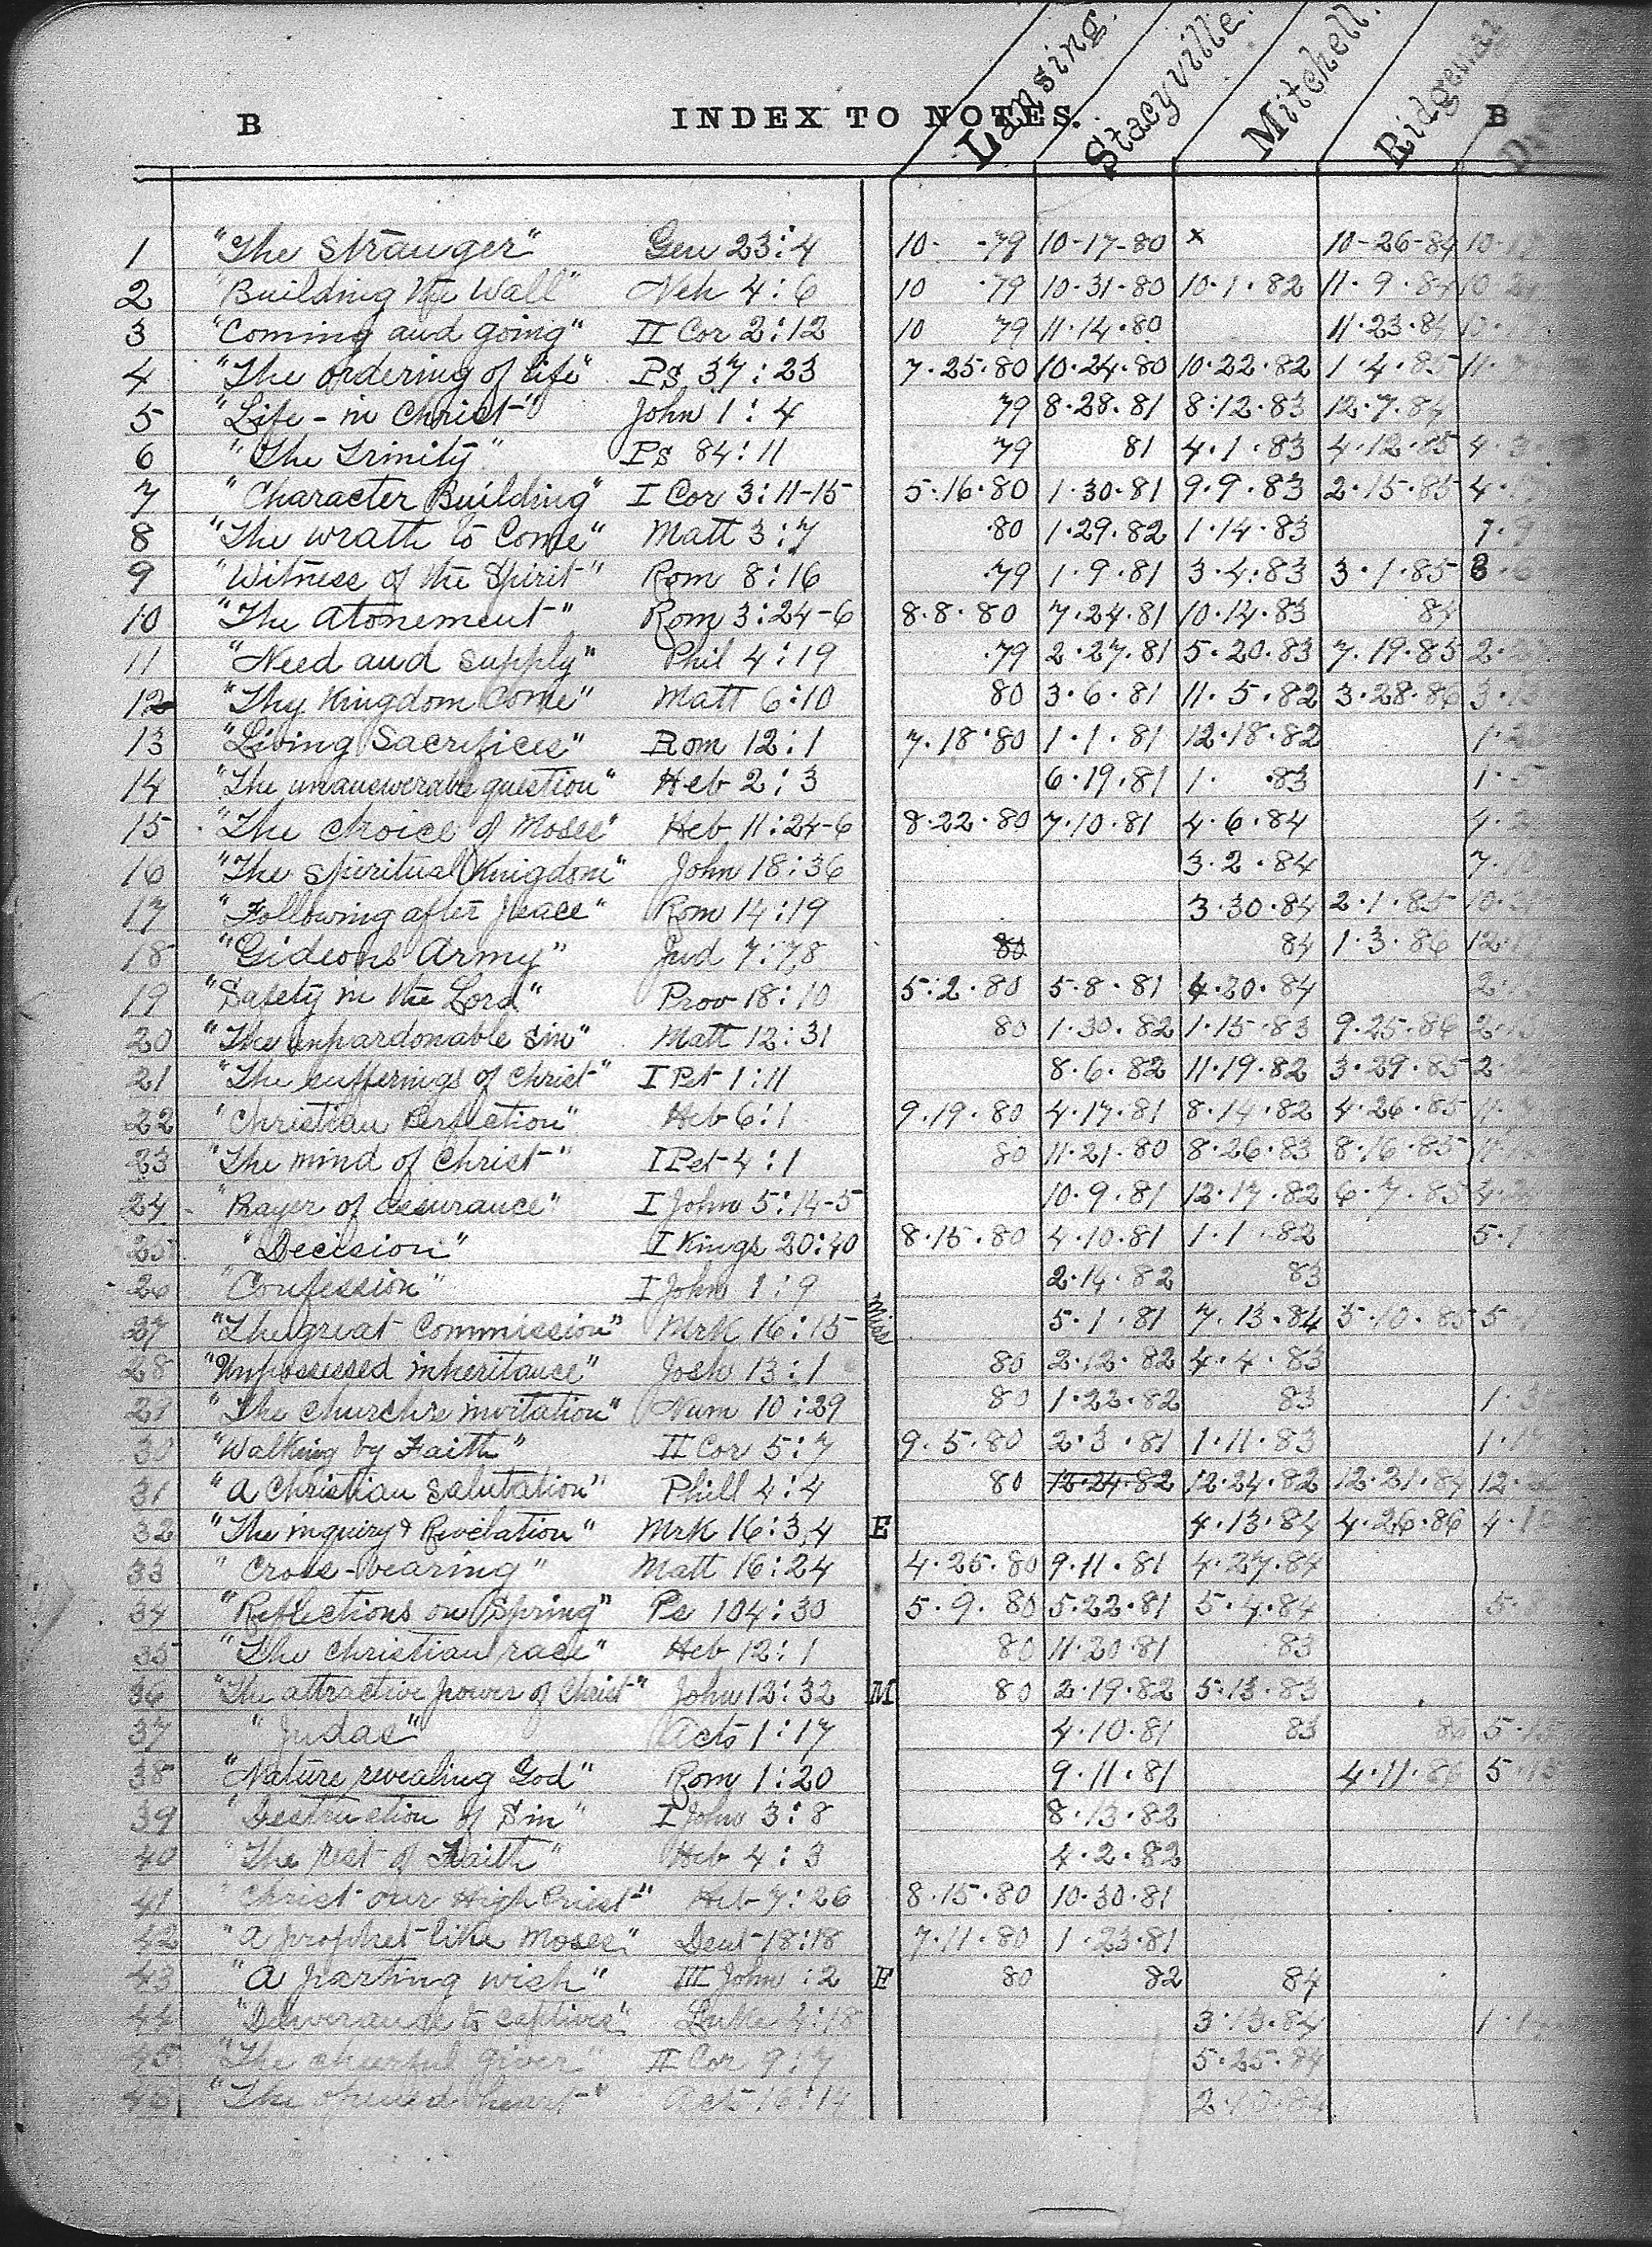 Thomas Oliver's bible index - first page